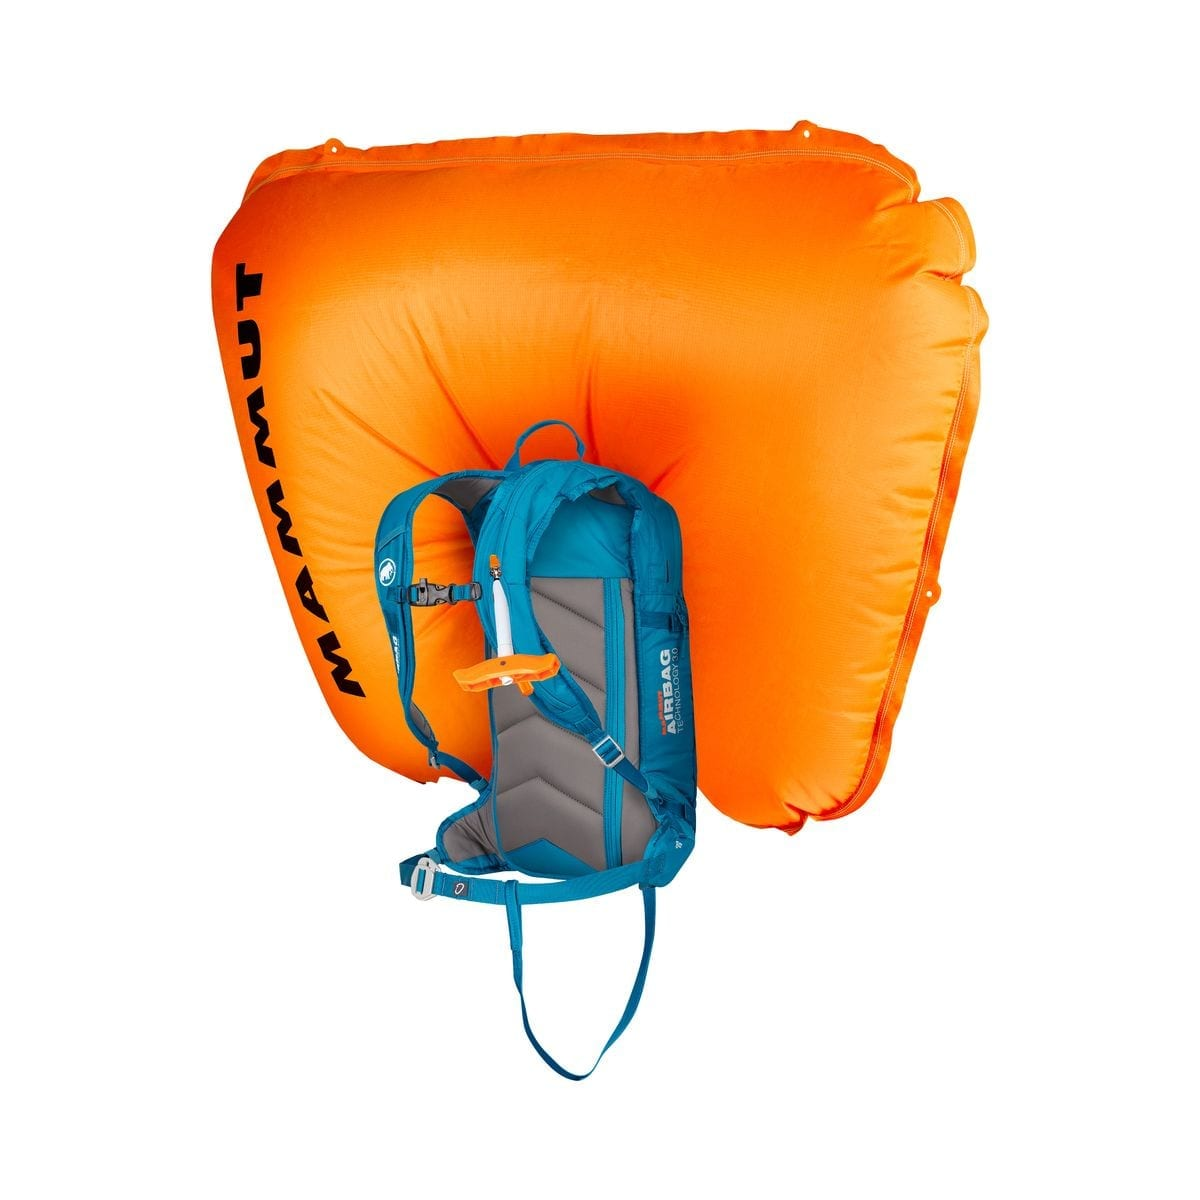 Mammut Flip Removable Airbag 3.0 Kit